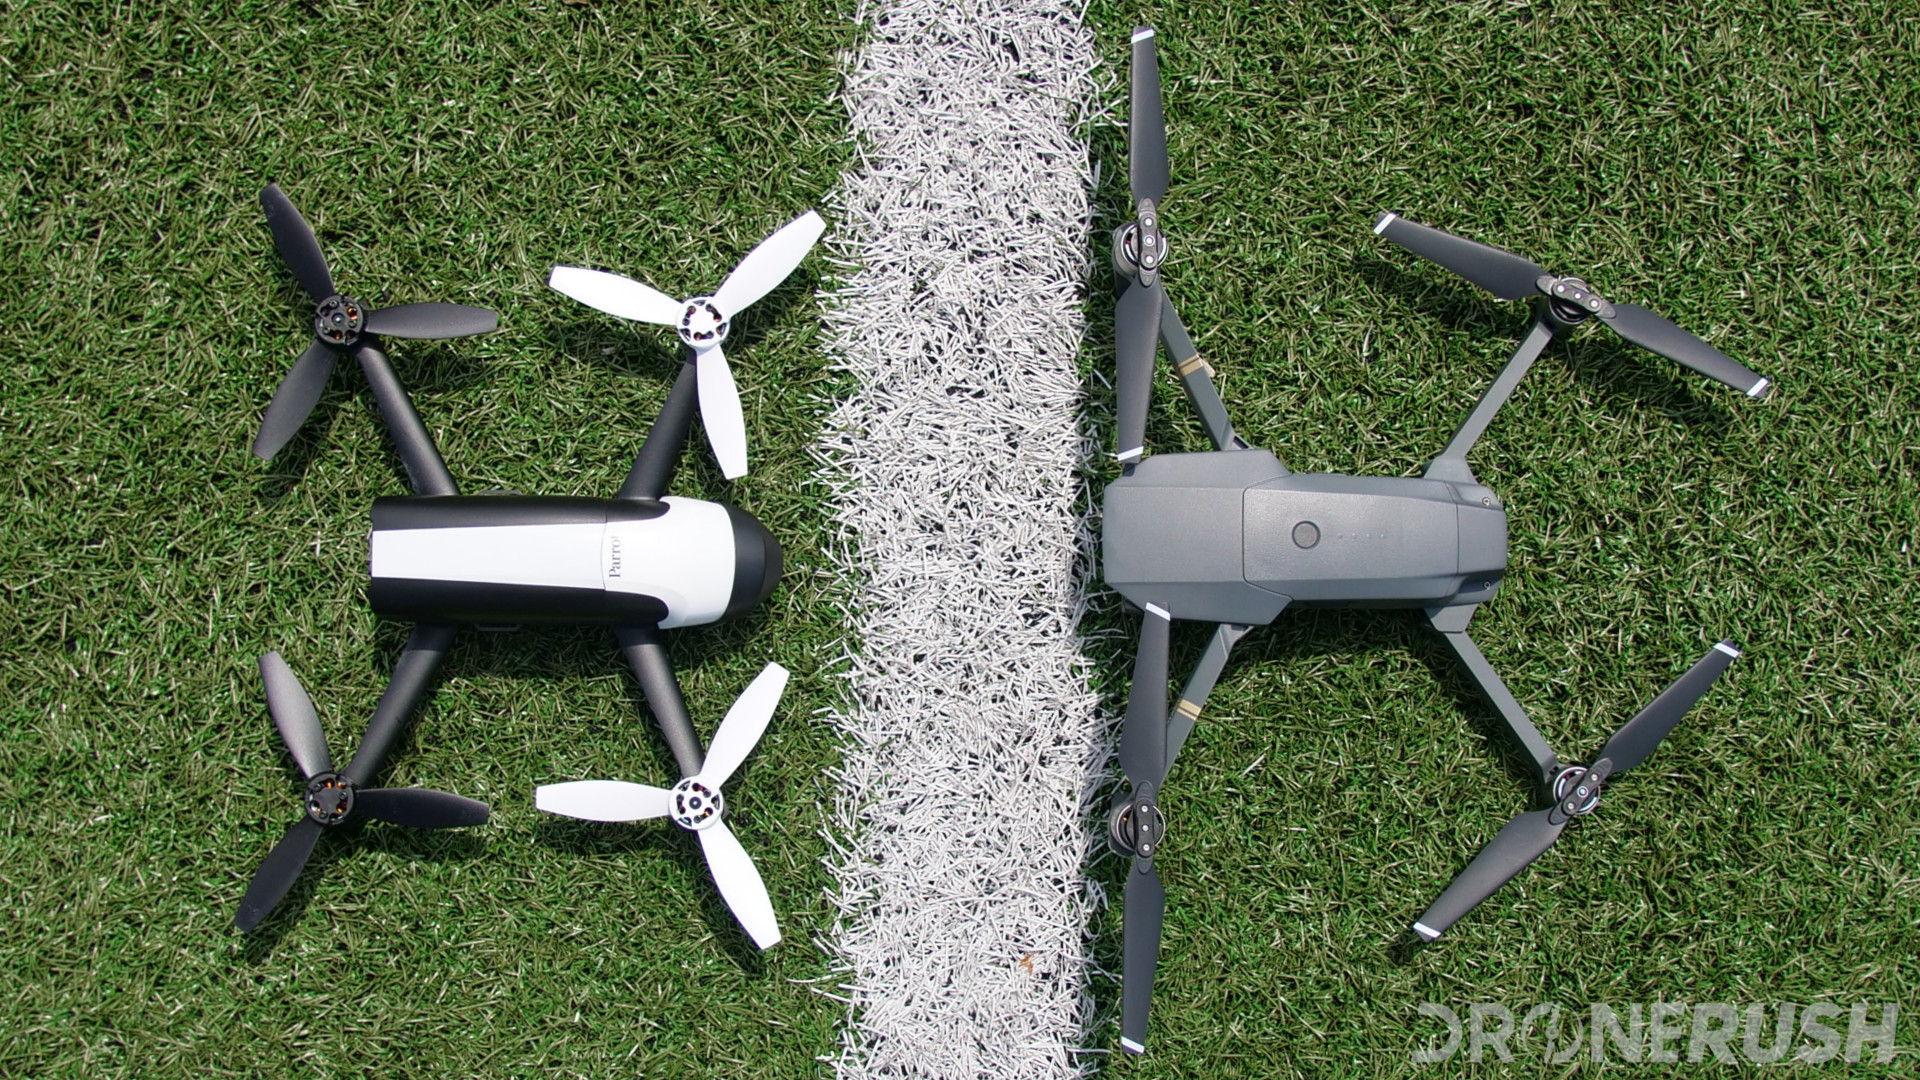 Drone Propellers How To Fly The Science Of Flight Drone Rush